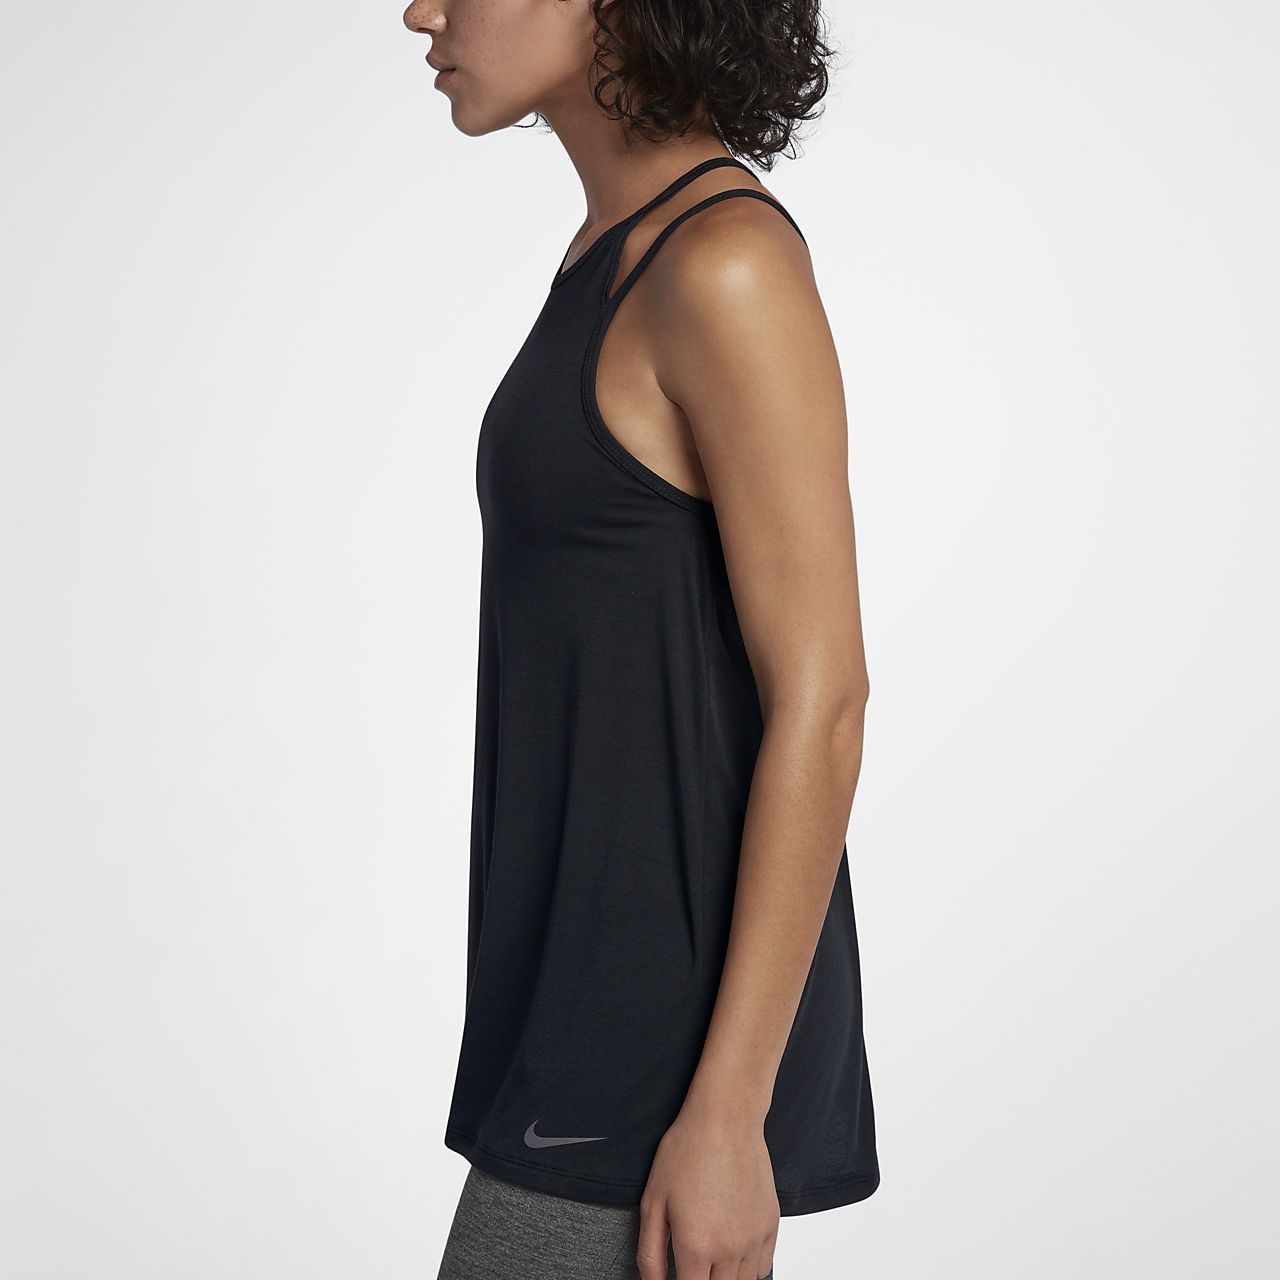 Nike Strappy Women's Training Tank Tops Black